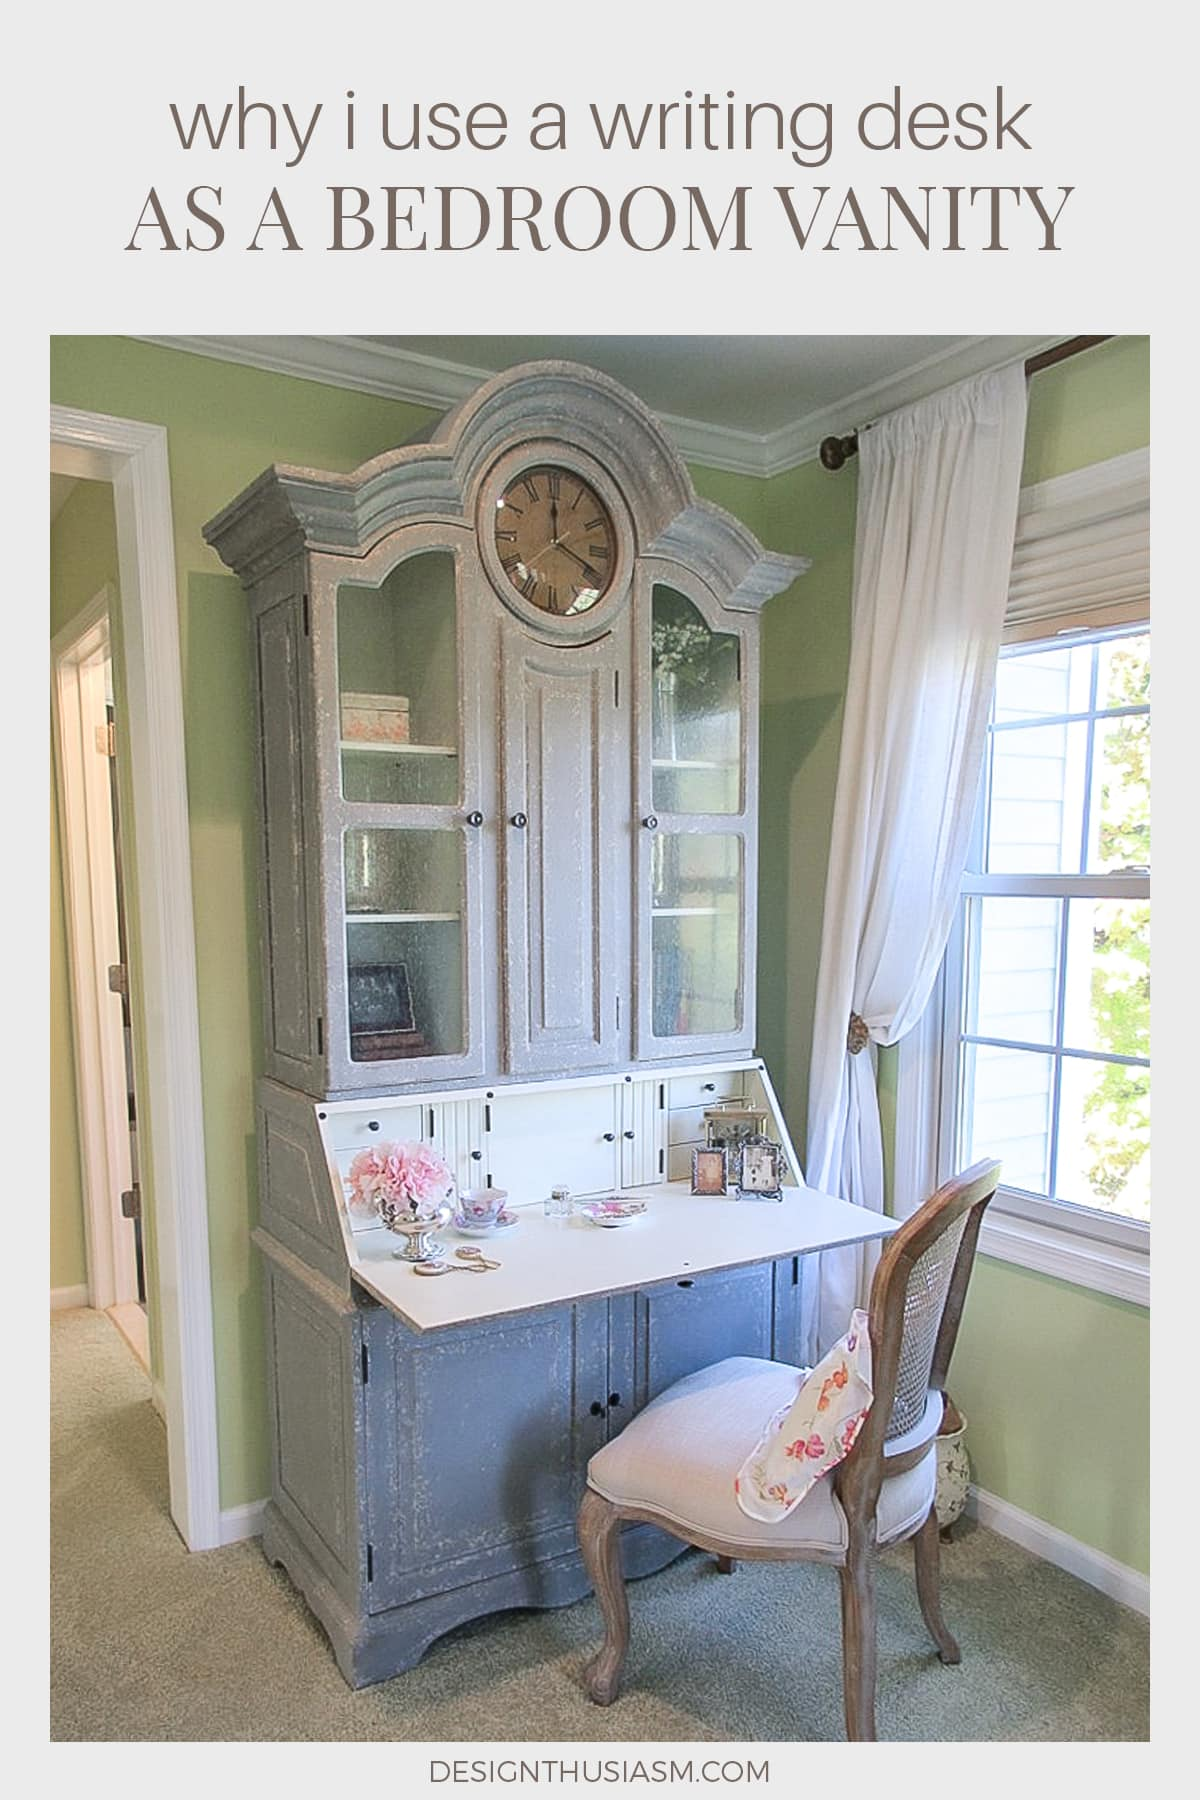 Dressing Table Ideas Why I Use A Writing Desk As A Bedroom Vanity